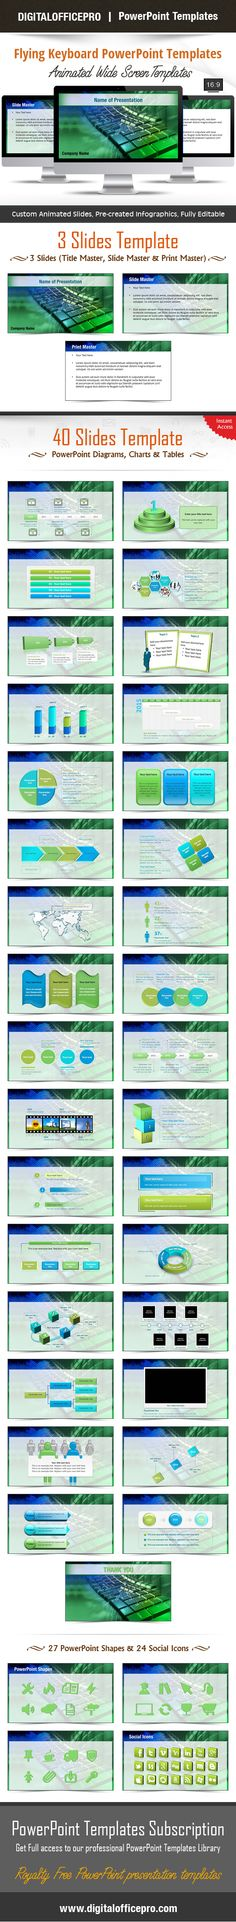 Clean inspiration powerpoint template 127 unique slides flying keyboard powerpoint template backgrounds toneelgroepblik Choice Image